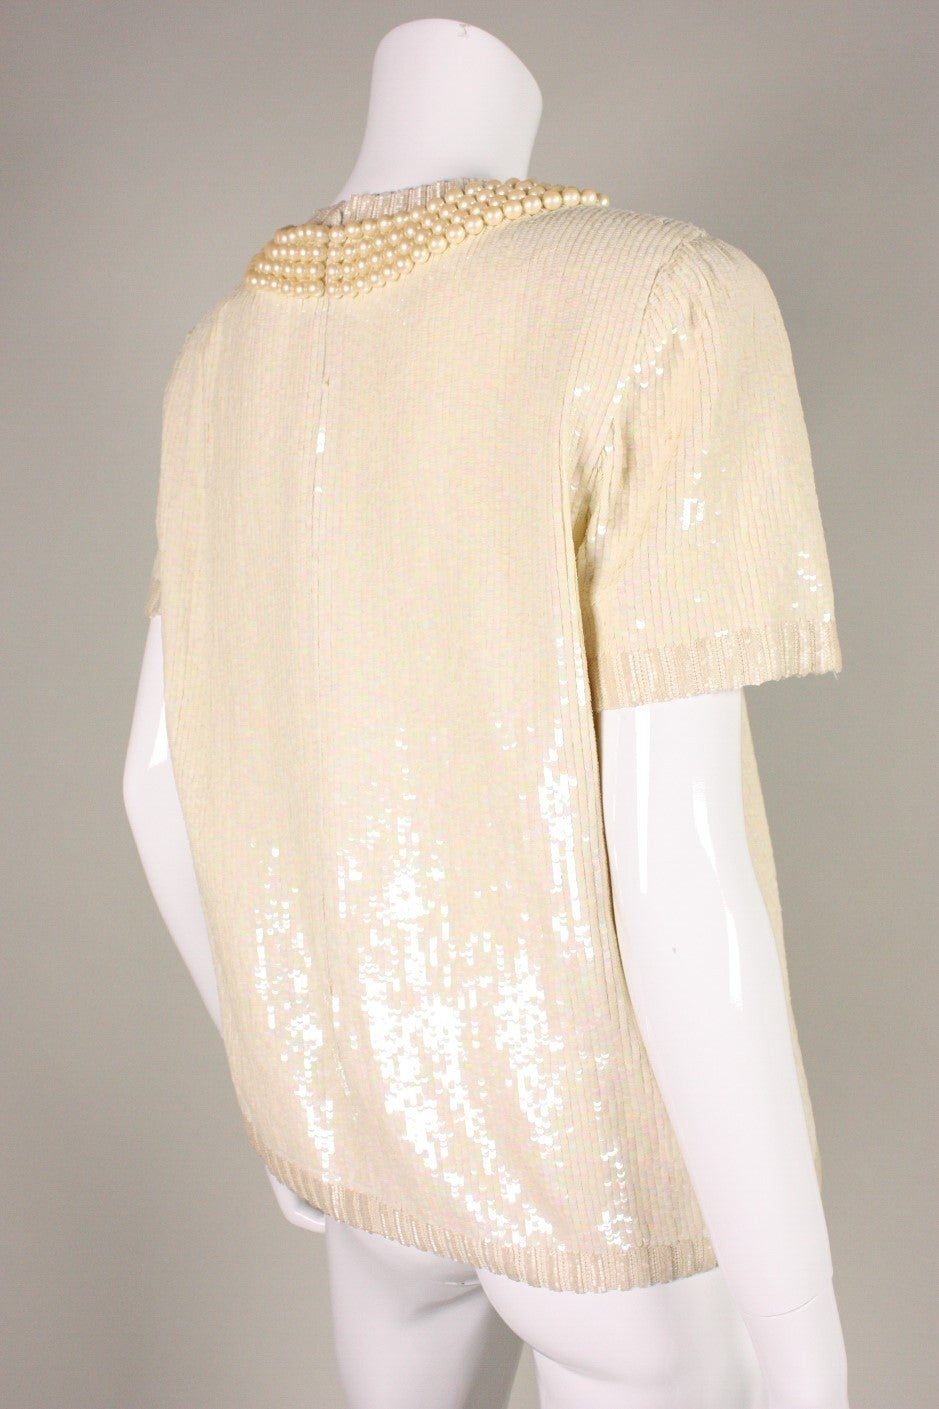 Vintage Bill Blass Sequined Encrusted Blouse with Trompe l'Oiel Details 3